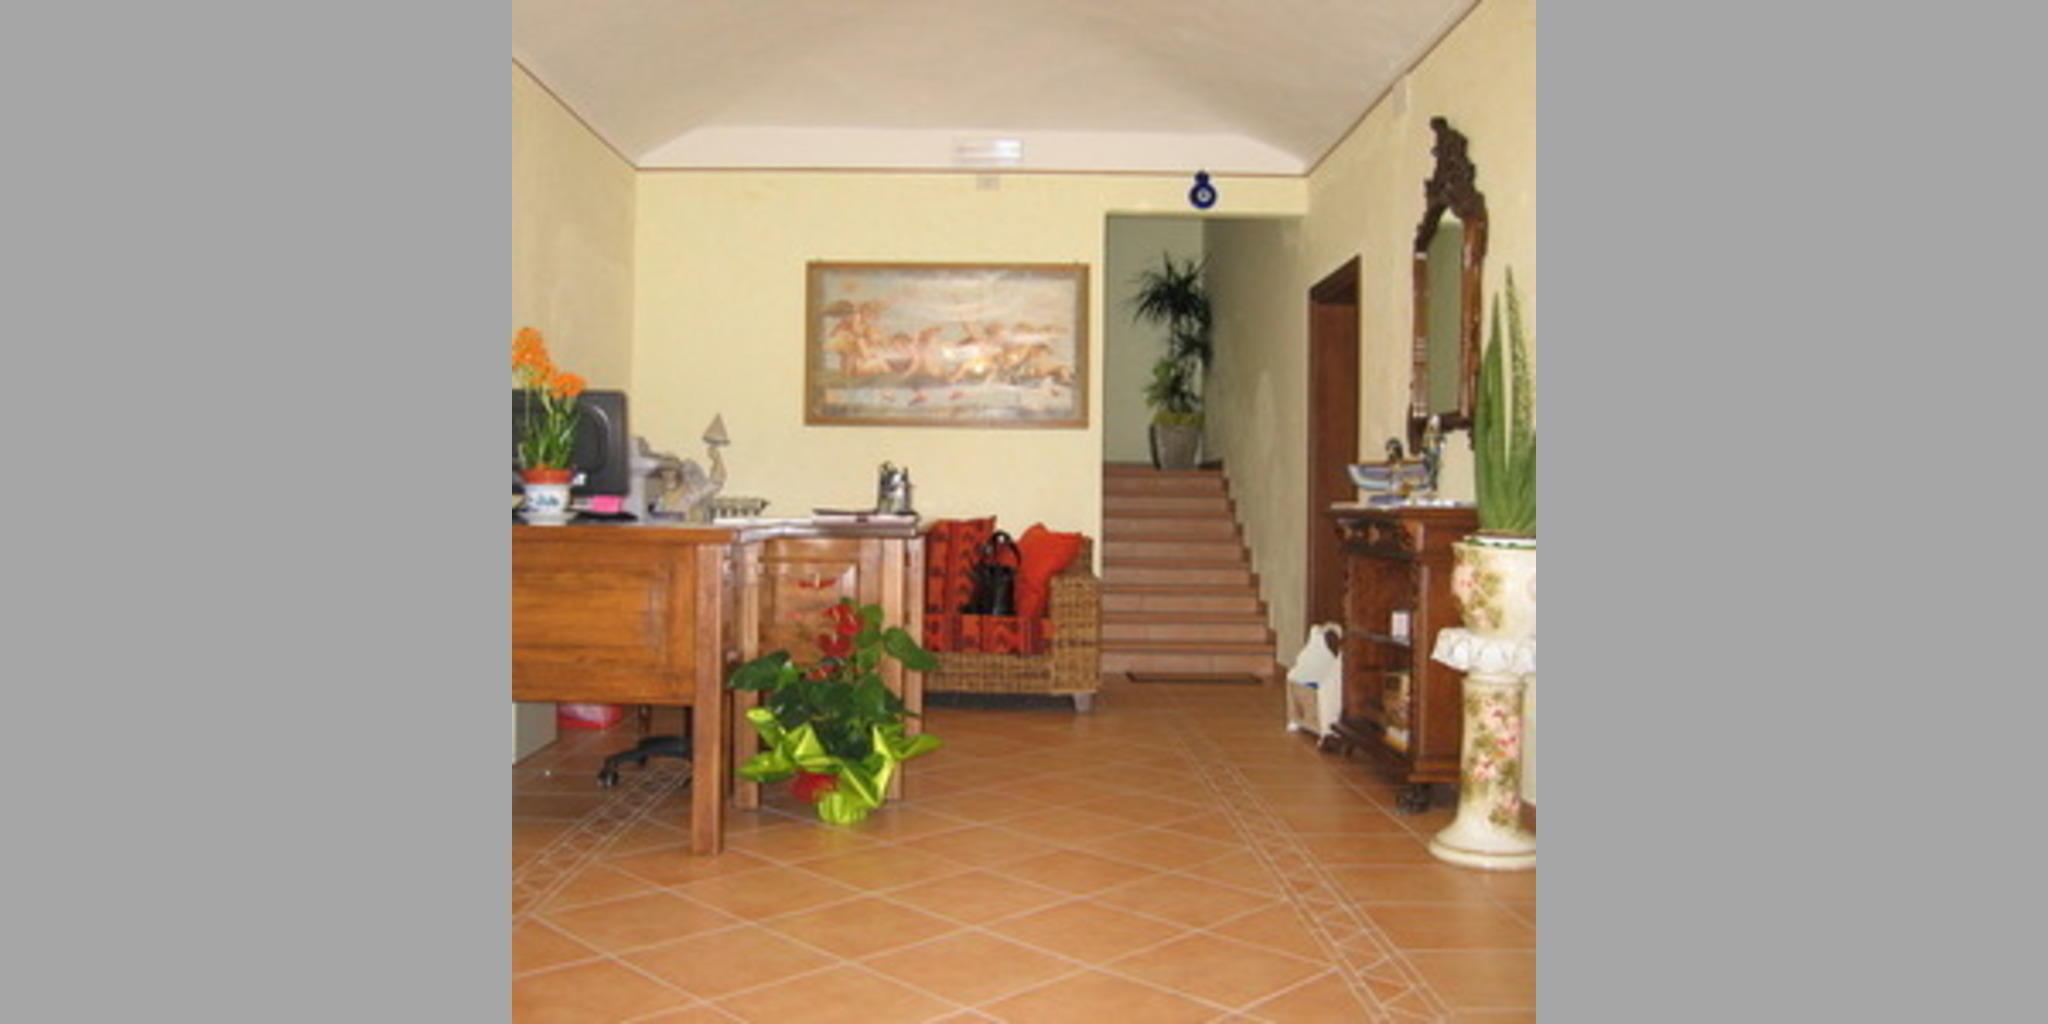 Bed & Breakfast Novi Di Modena - Modena